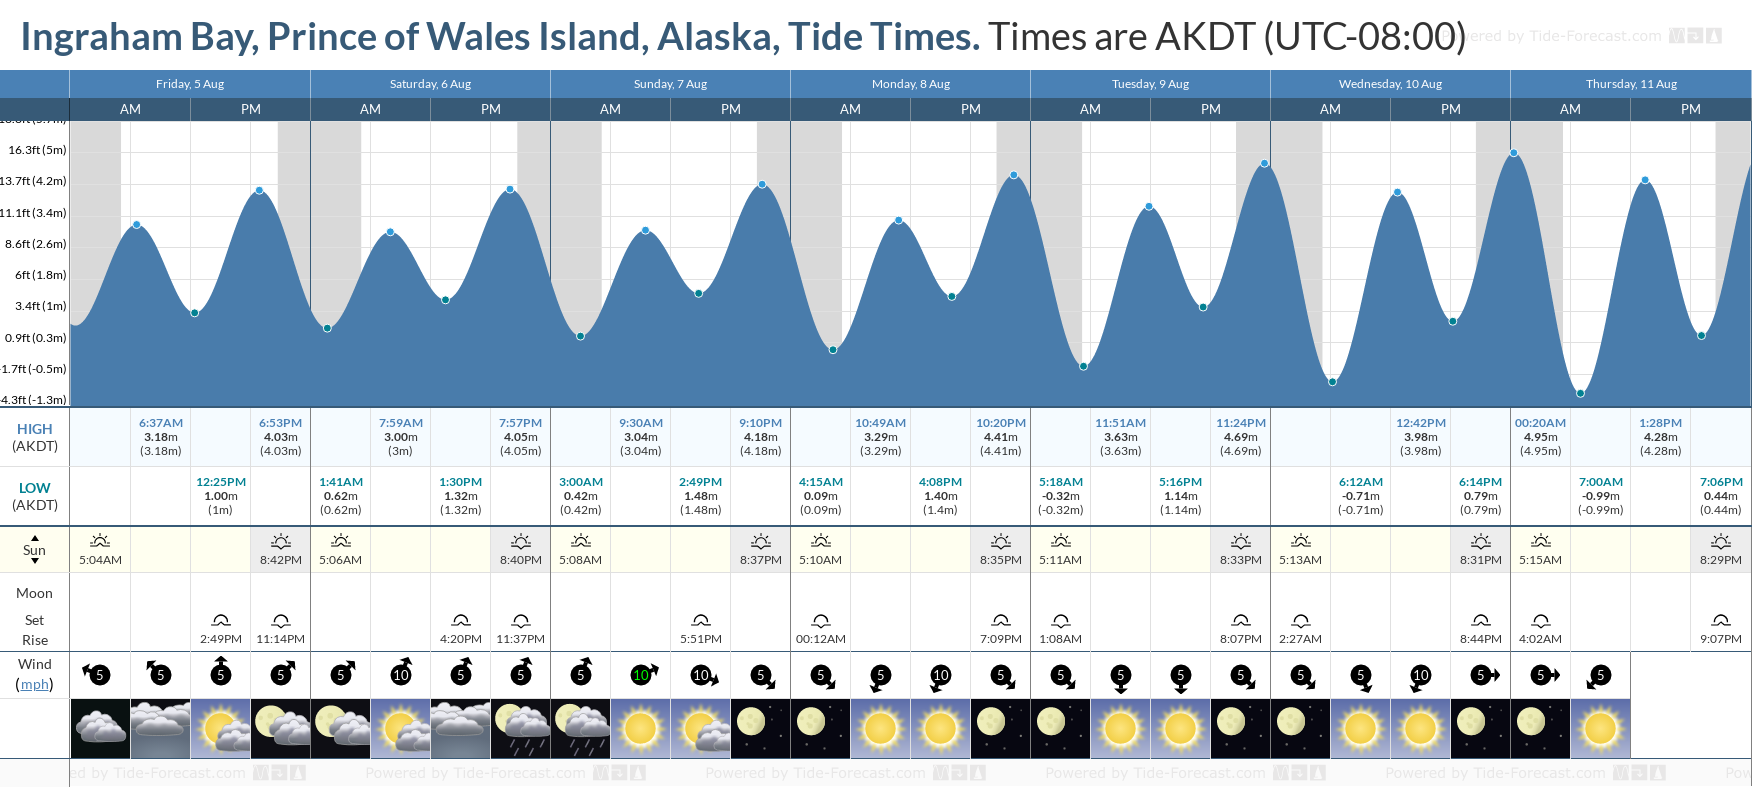 Ingraham Bay, Prince of Wales Island, Alaska Tide Chart including high and low tide tide times for the next 7 days